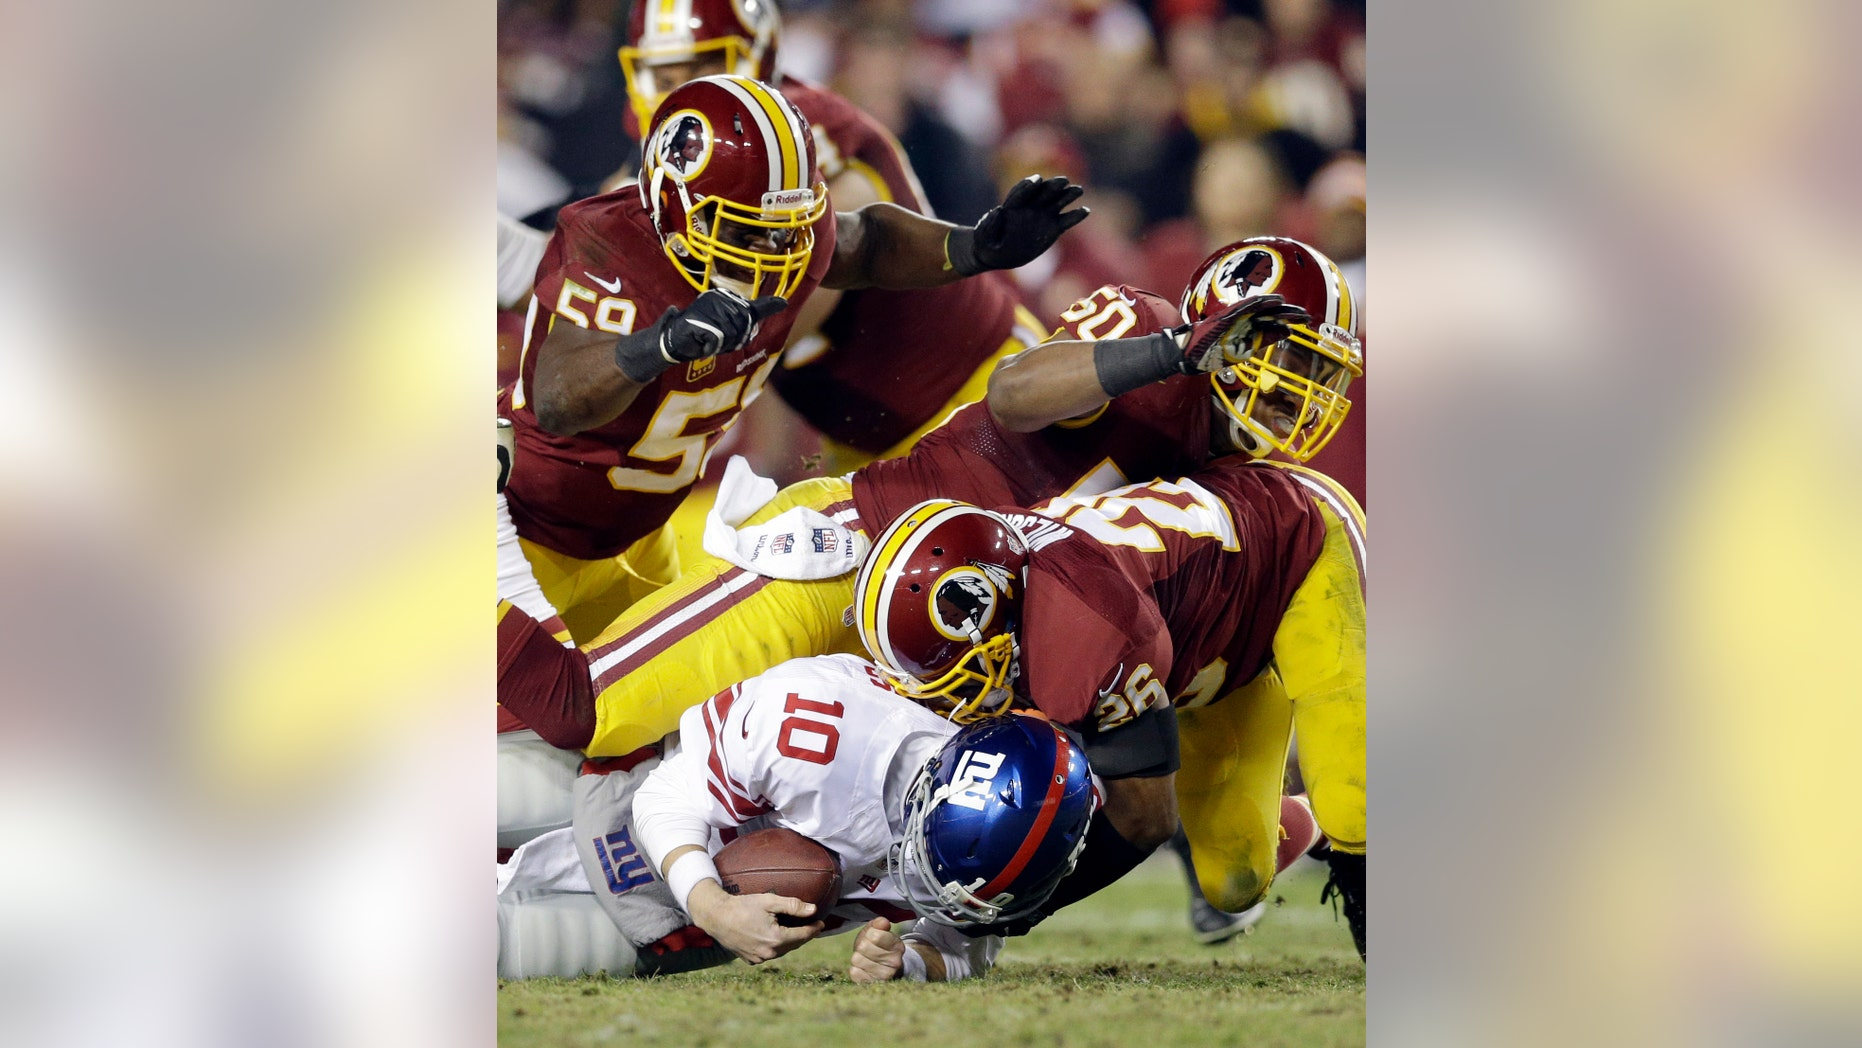 New York Giants quarterback Eli Manning (10) is sacked by Washington Redskins inside linebacker London Fletcher (59), outside linebacker Rob Jackson (50)  and cornerback Josh Wilson during the second half of an NFL football game Sunday, Dec. 1, 2013, in Landover, Md. The Giants won 24-17. (AP Photo/Patrick Semansky)